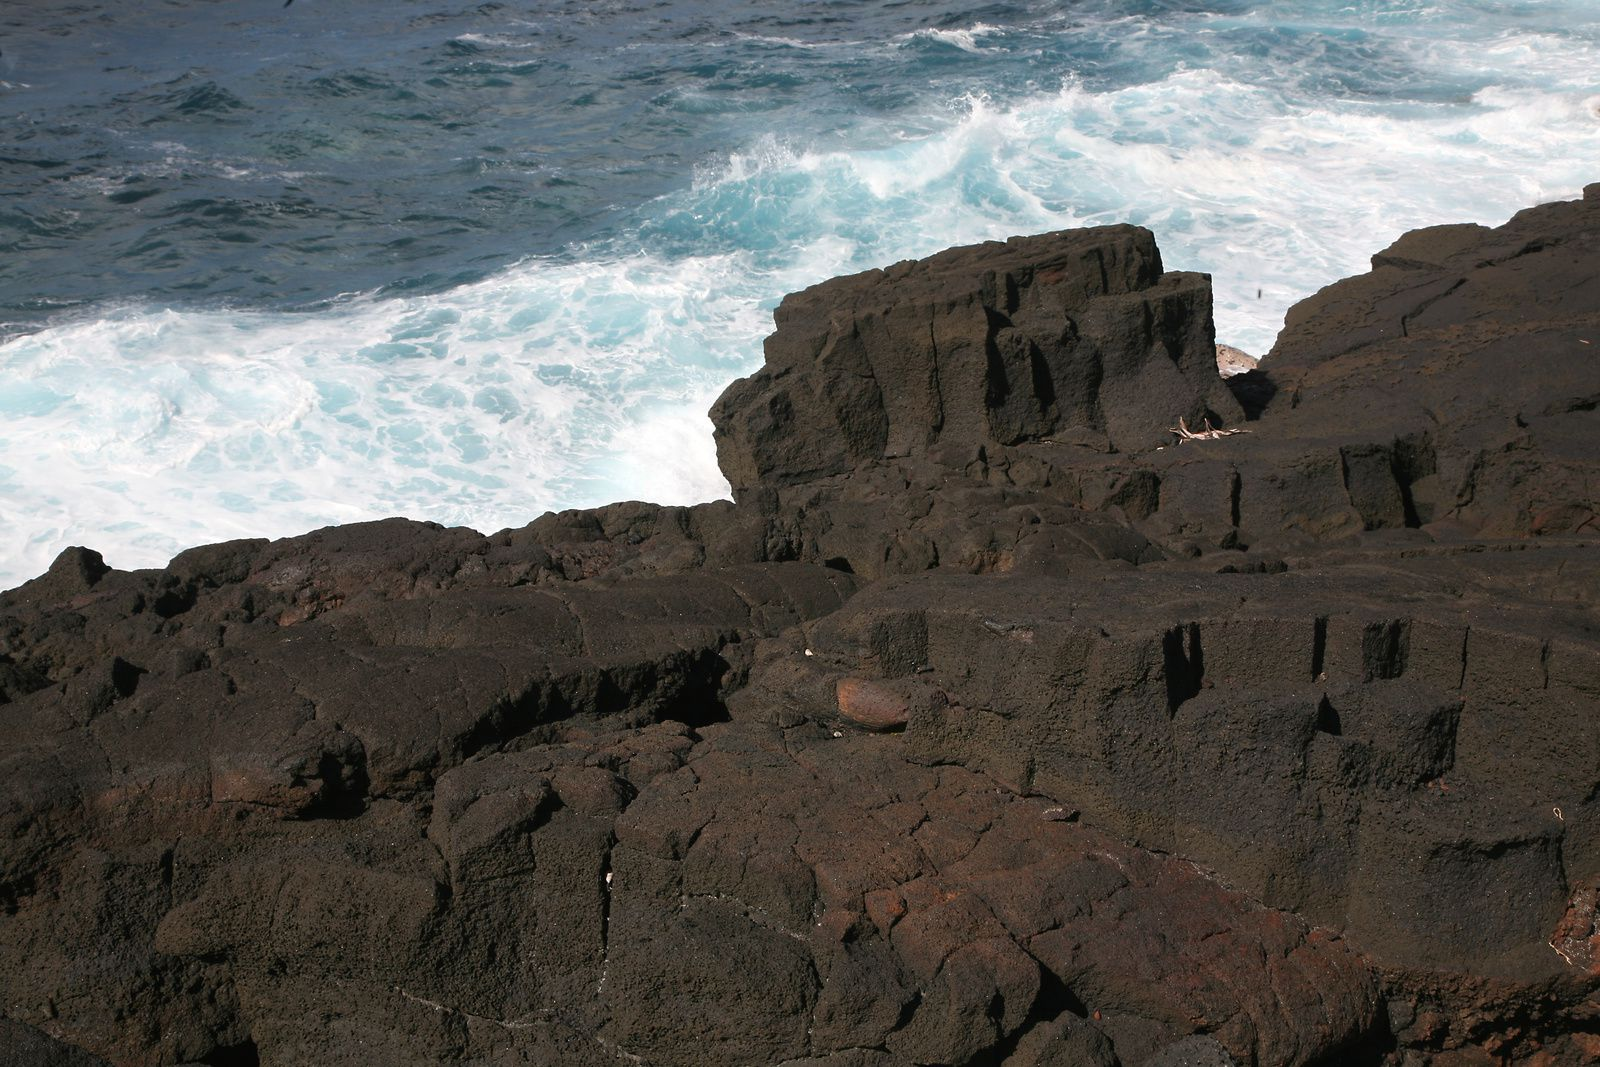 Piton de La Fournaise - 1776 lava flow , on the seafront - prismation during the cooling of these thick lava flow, then exposed by erosion - .- photo © Bernard Duyck / June 2017